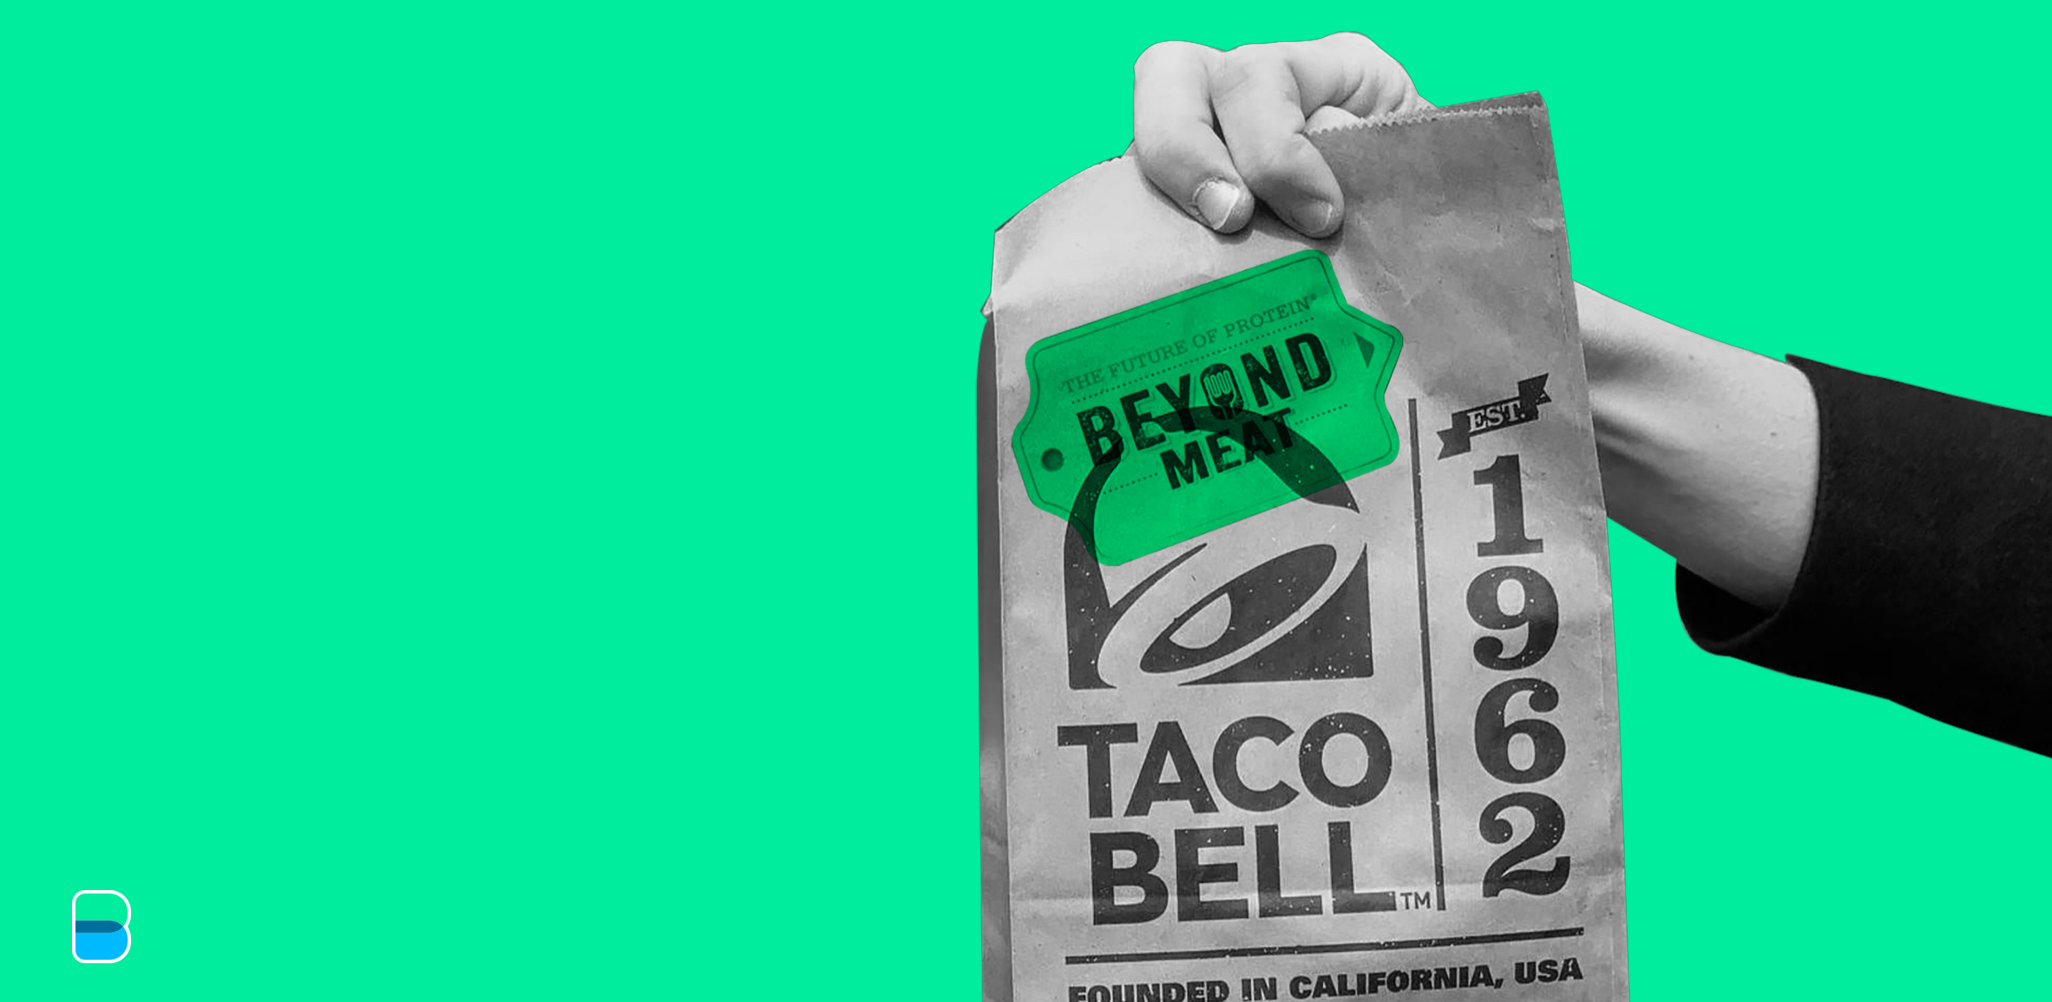 Beyond Meat and Taco Bell embrace Veganuary